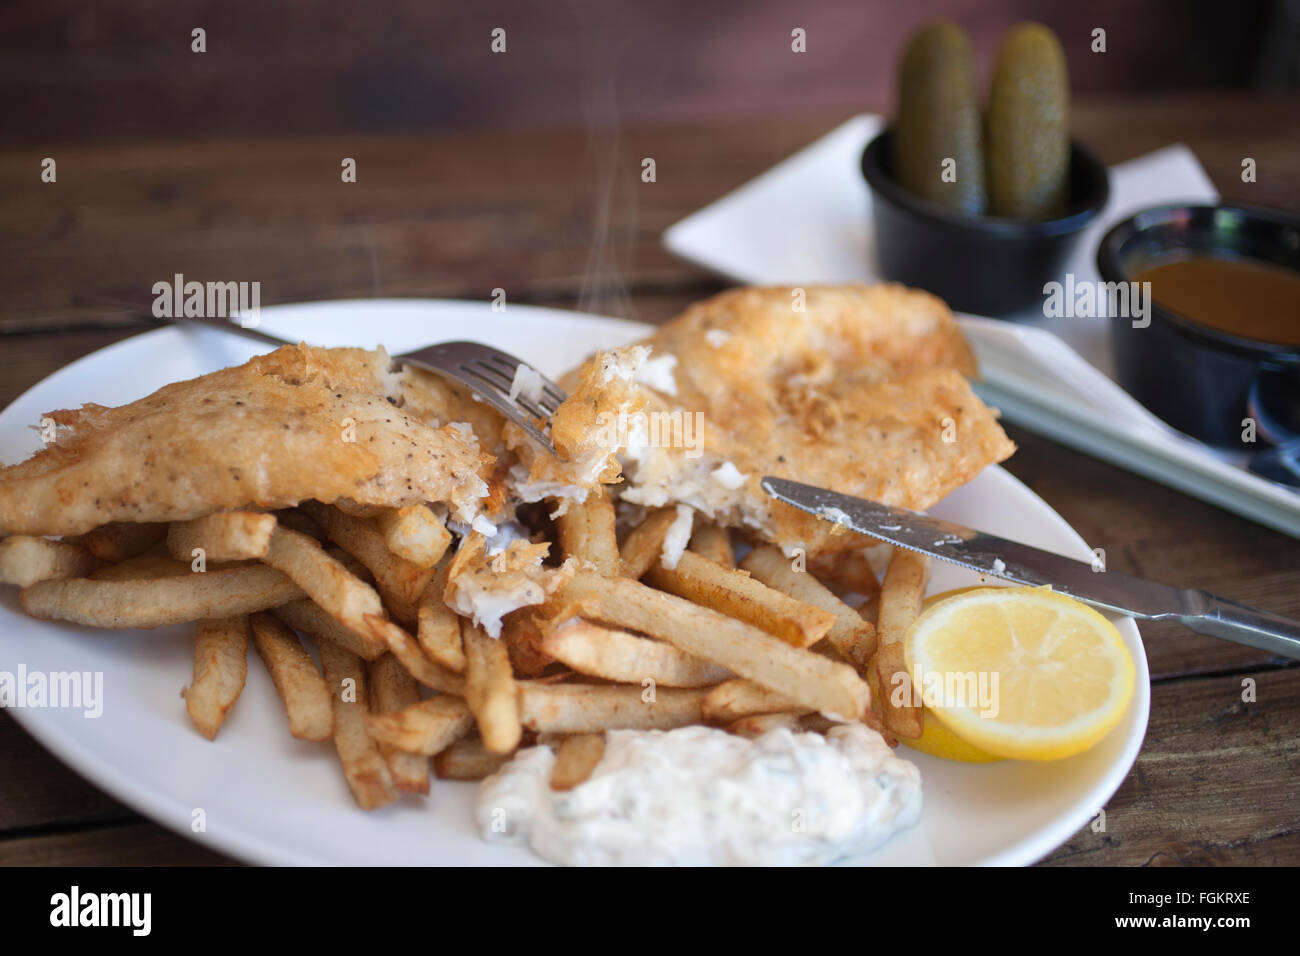 Chip Shop BXTN, Hip-hop themed fish and chip shop in Brixton, serving fresh fish and seafood dishes, South London, - Stock Image